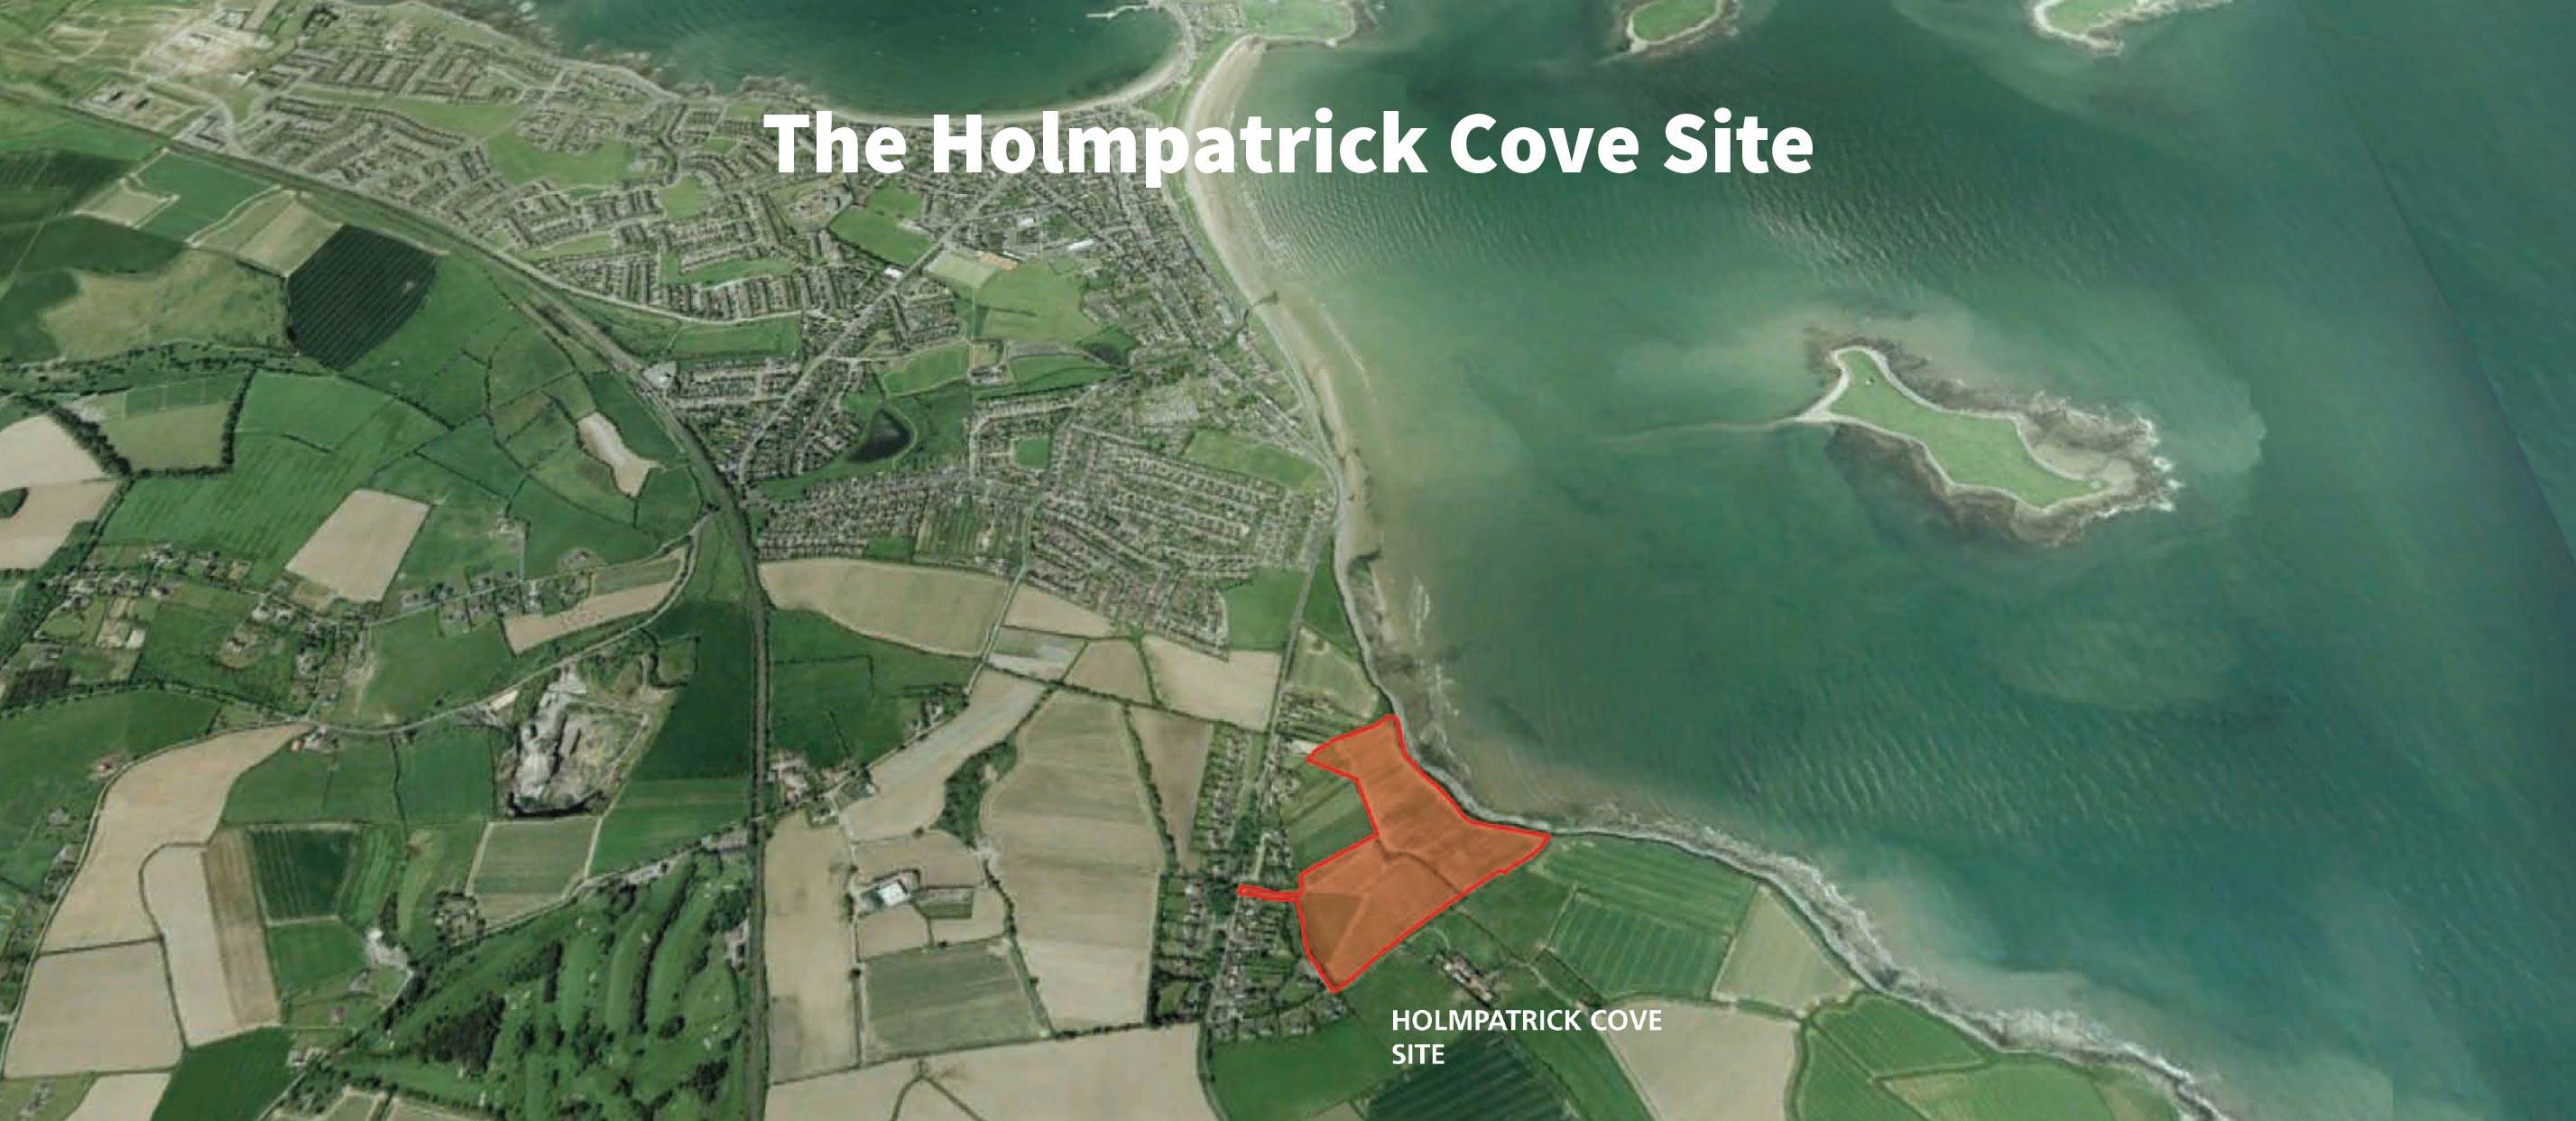 Satellite image of the Holmpatrick Cove site and greater Skerries